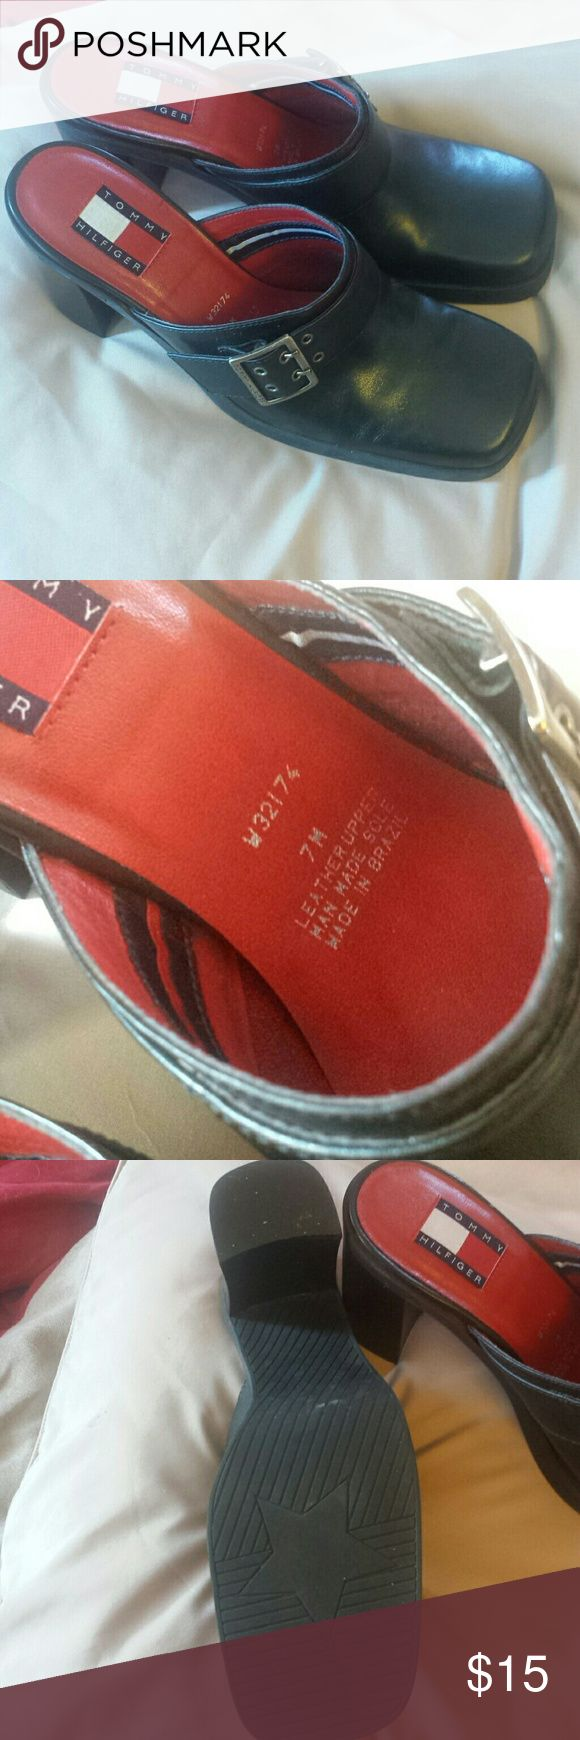 Tommy Hilfiger mules clogs vintage size 7M Tommy Hilfiger some would say mules others would say clogs either way their vintage square toe size 7M black leather with buckle red insoles, soles are not worn at all Tommy Hilfiger Shoes Mules & Clogs